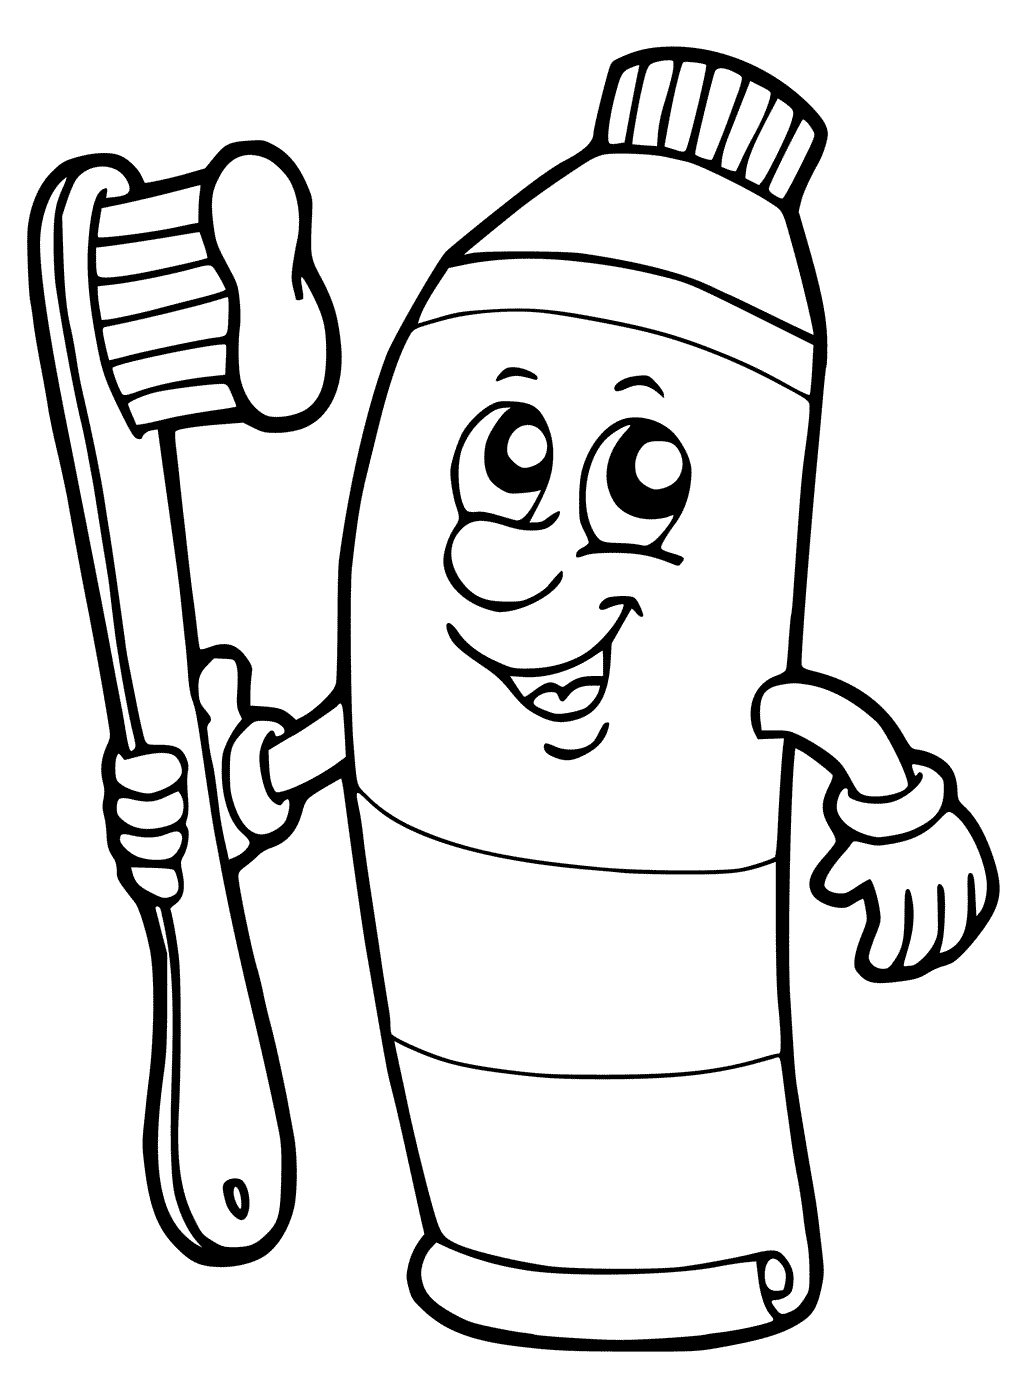 Toothbrush And Toothpaste Drawing at GetDrawings | Free ...